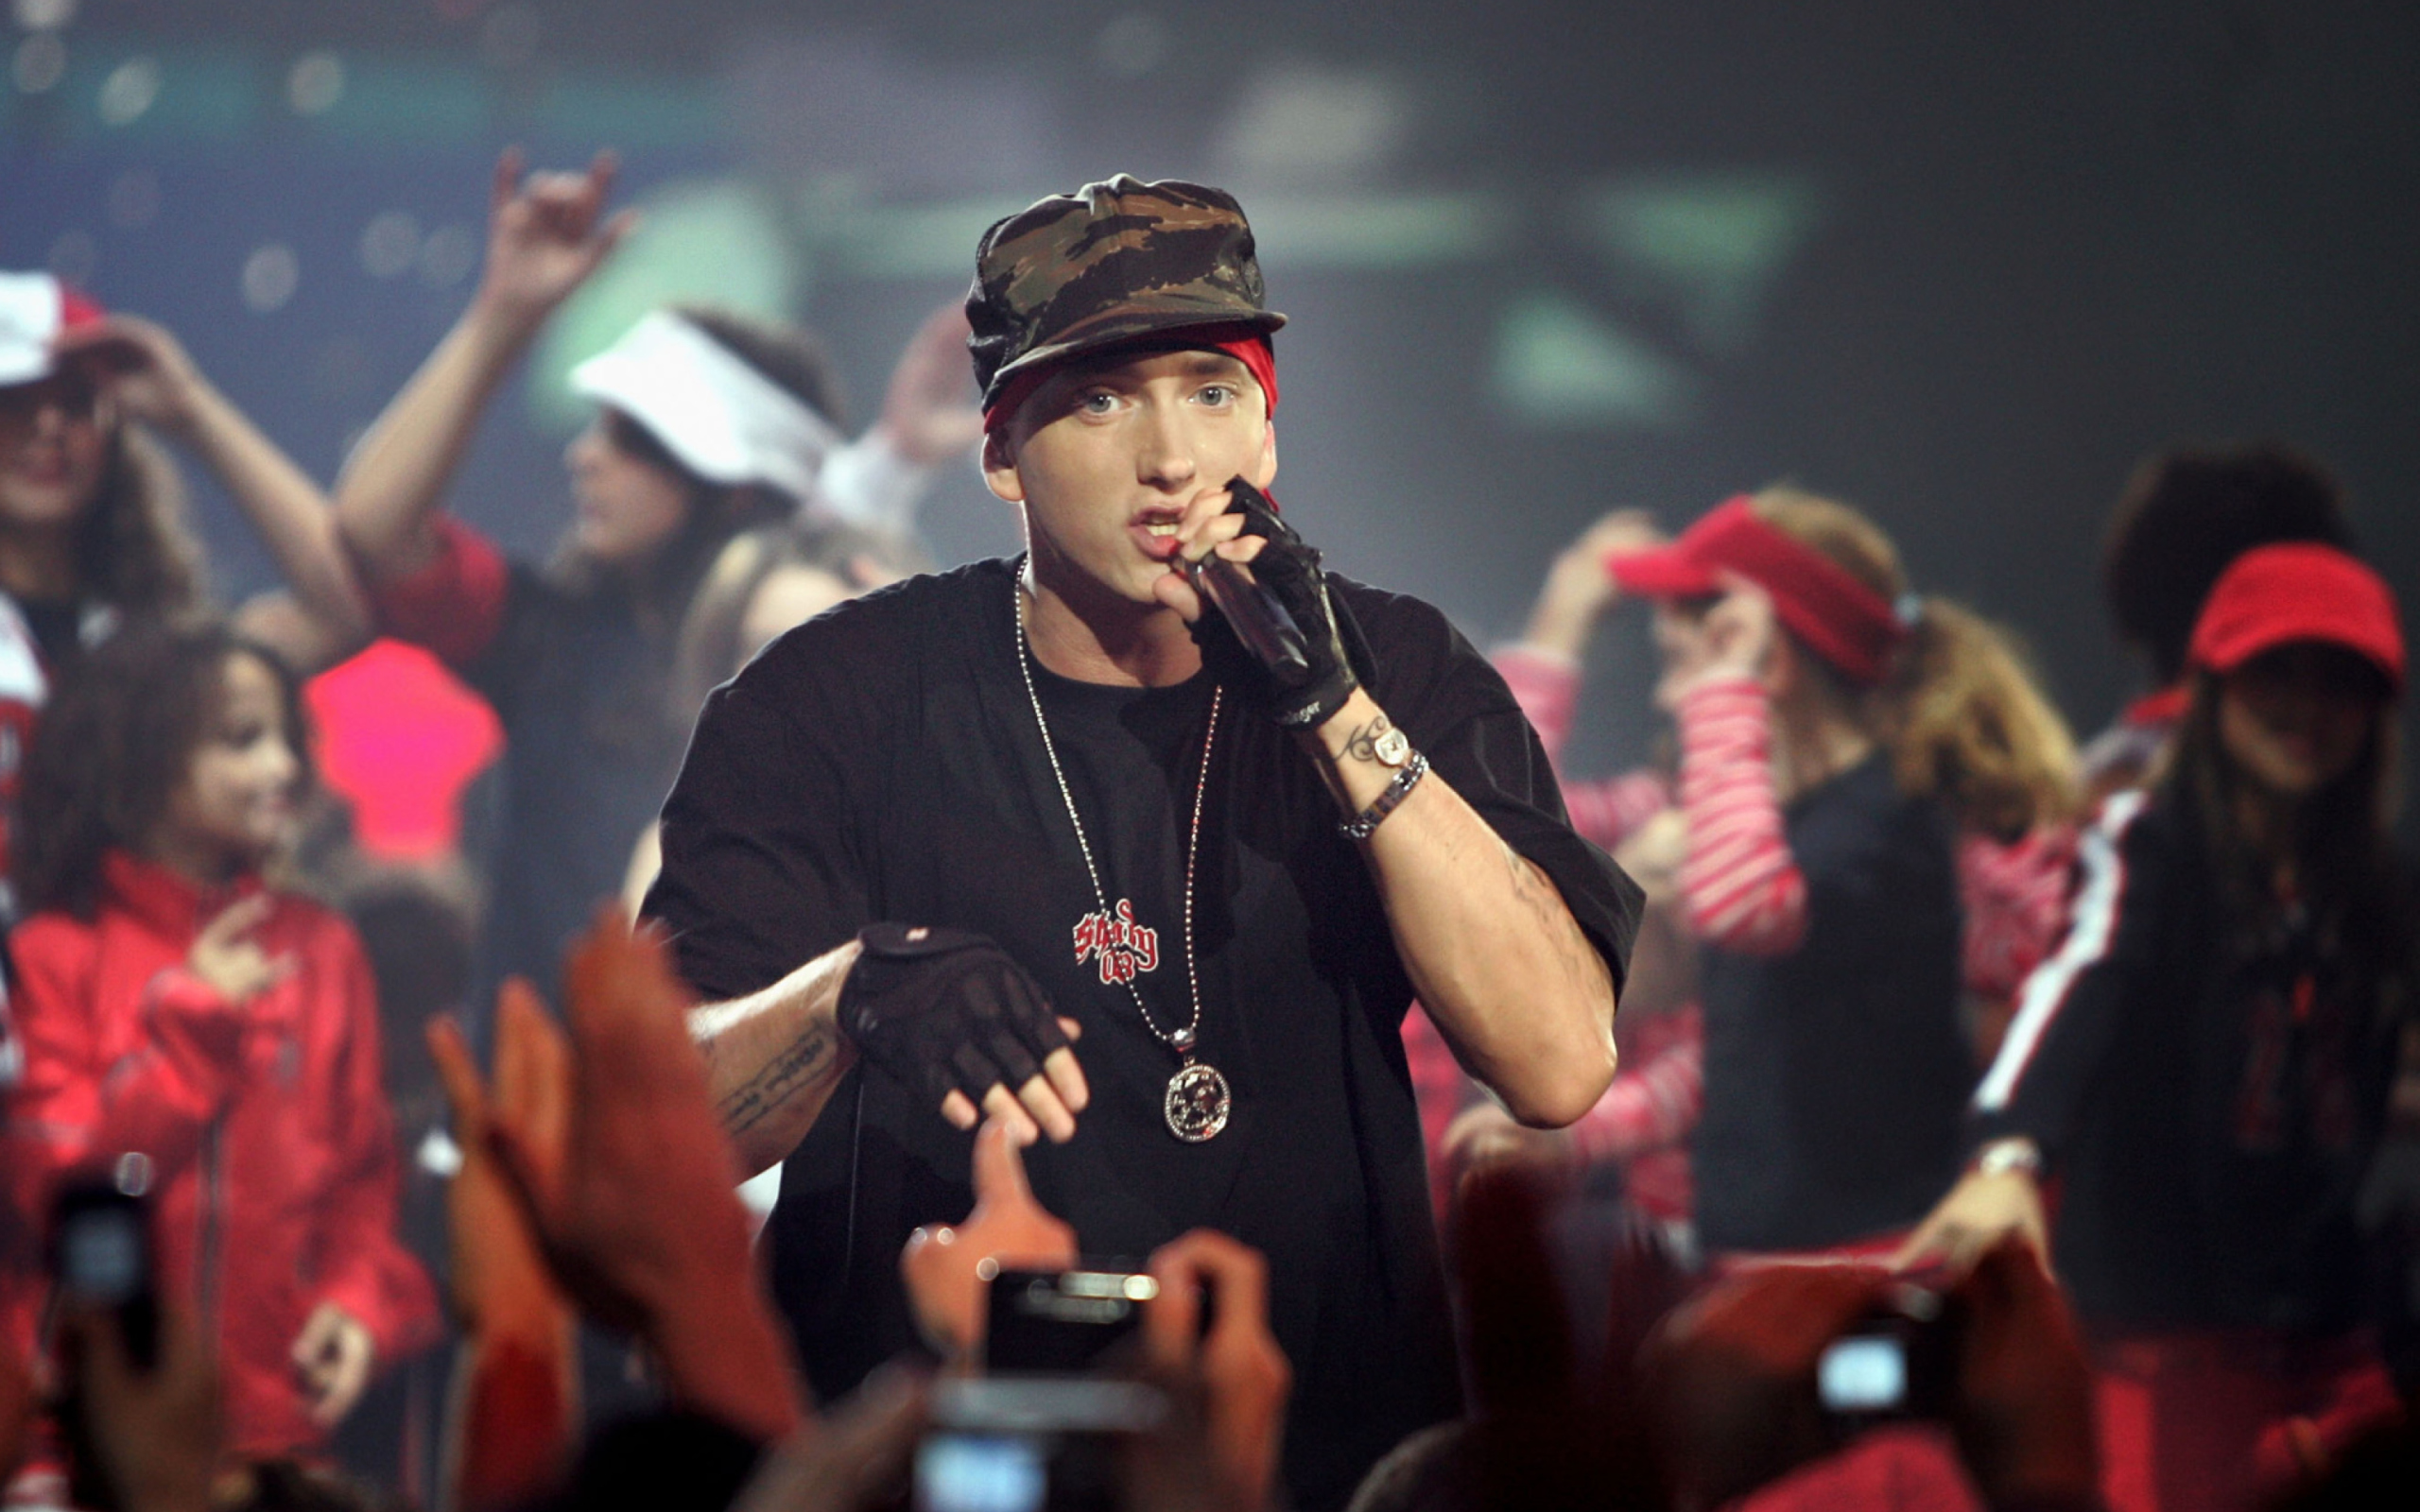 Hiphop white wash The impact of Eminem on rap music and